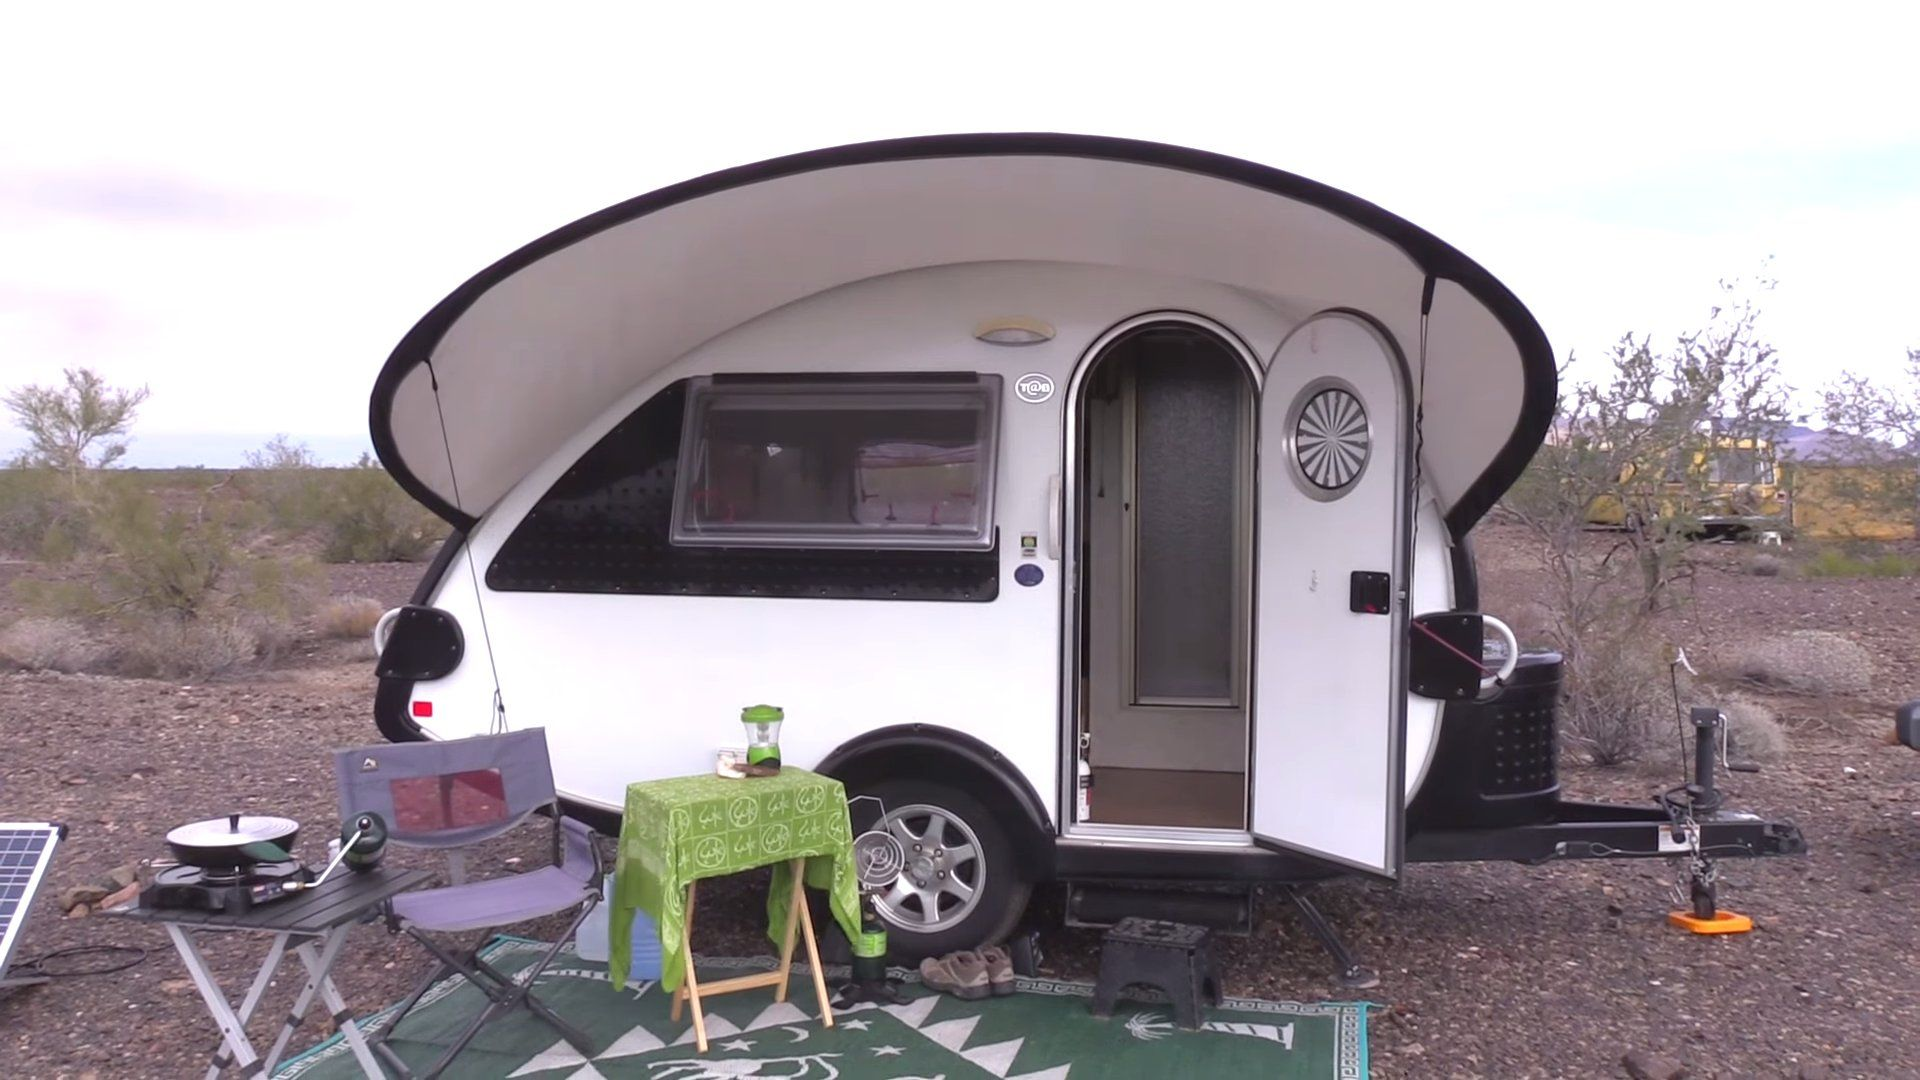 Especial Her Teardrop Trailer Jeep Beauer 3x Camper Retired Nomad Woman Living Sale Her Teardrop Trailer Tinytrailerscamper Retired Nomad Woman Living Usa